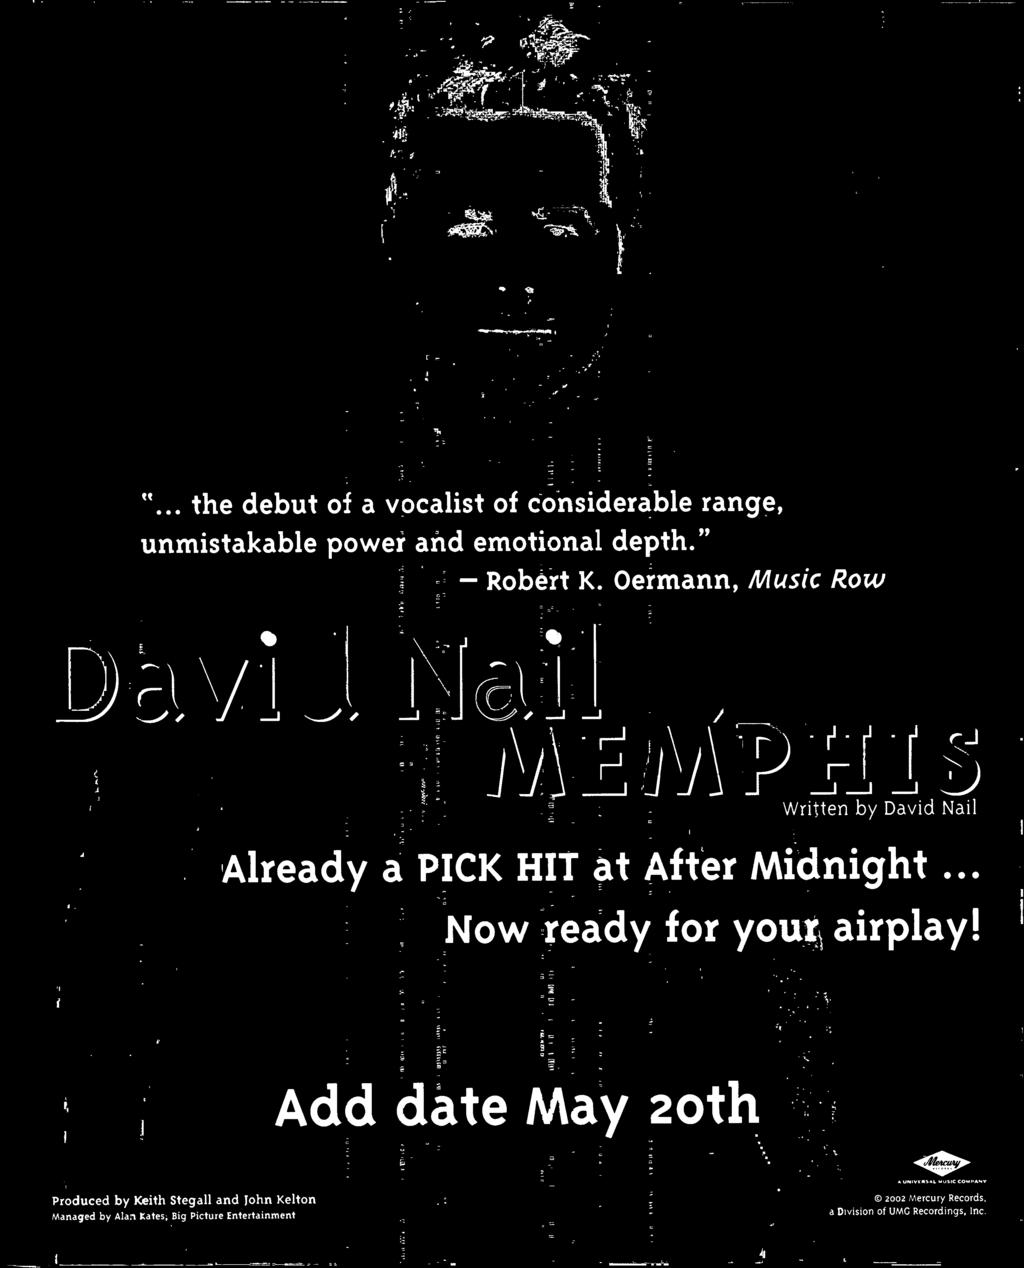 Add date May oth Produced by Keith Stegall and John Kelton vanaged